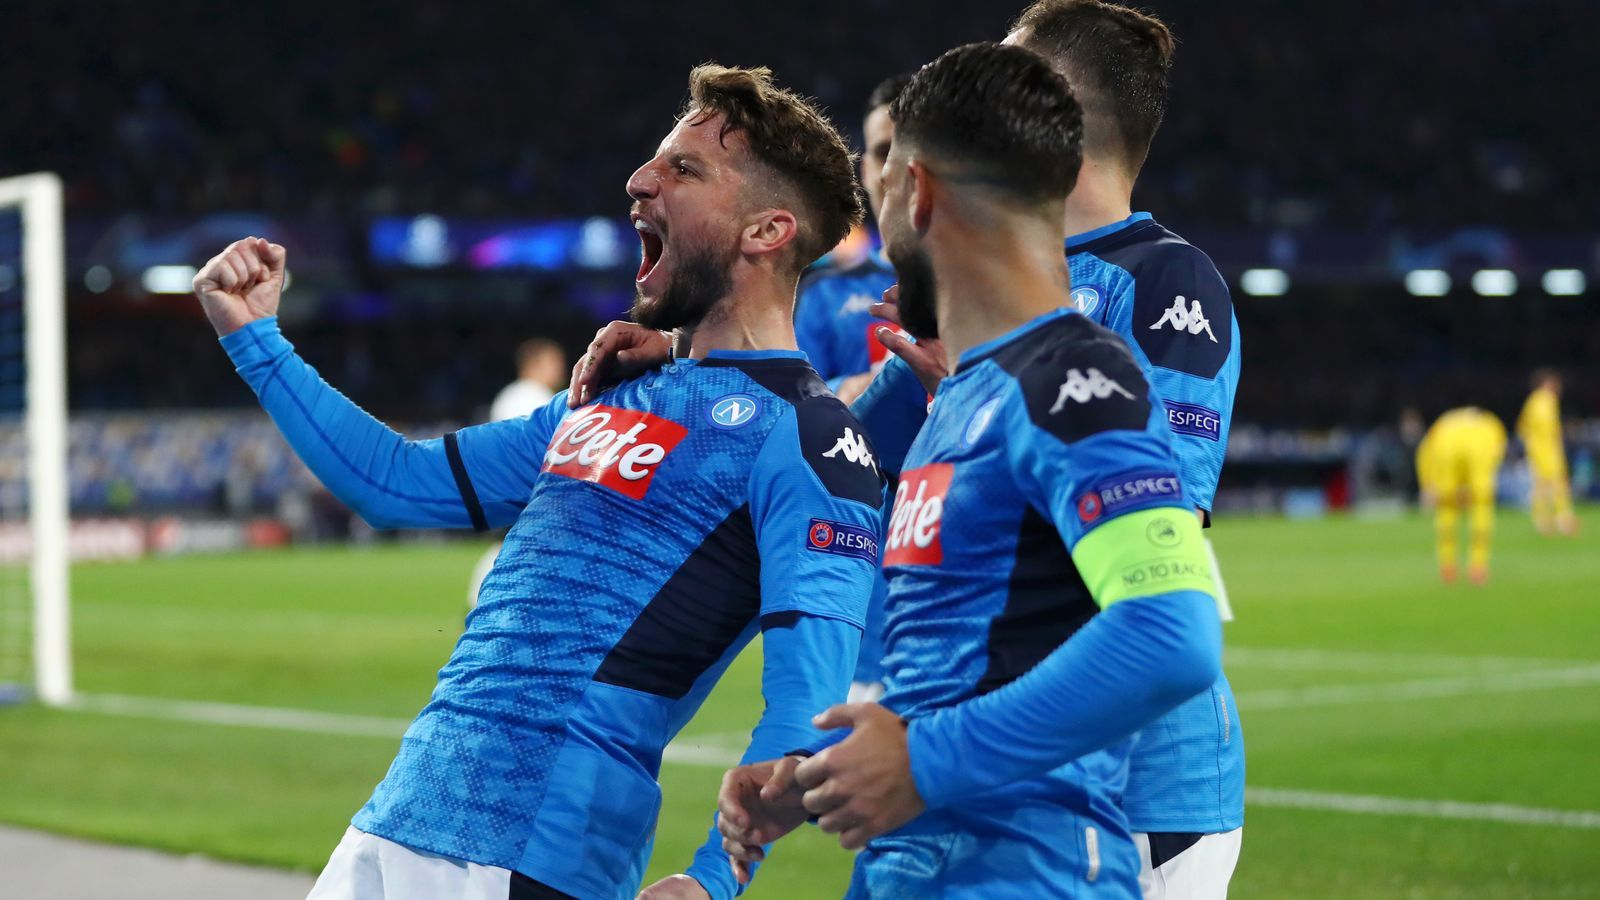 Mertens celebra el seu gol a San Paolo